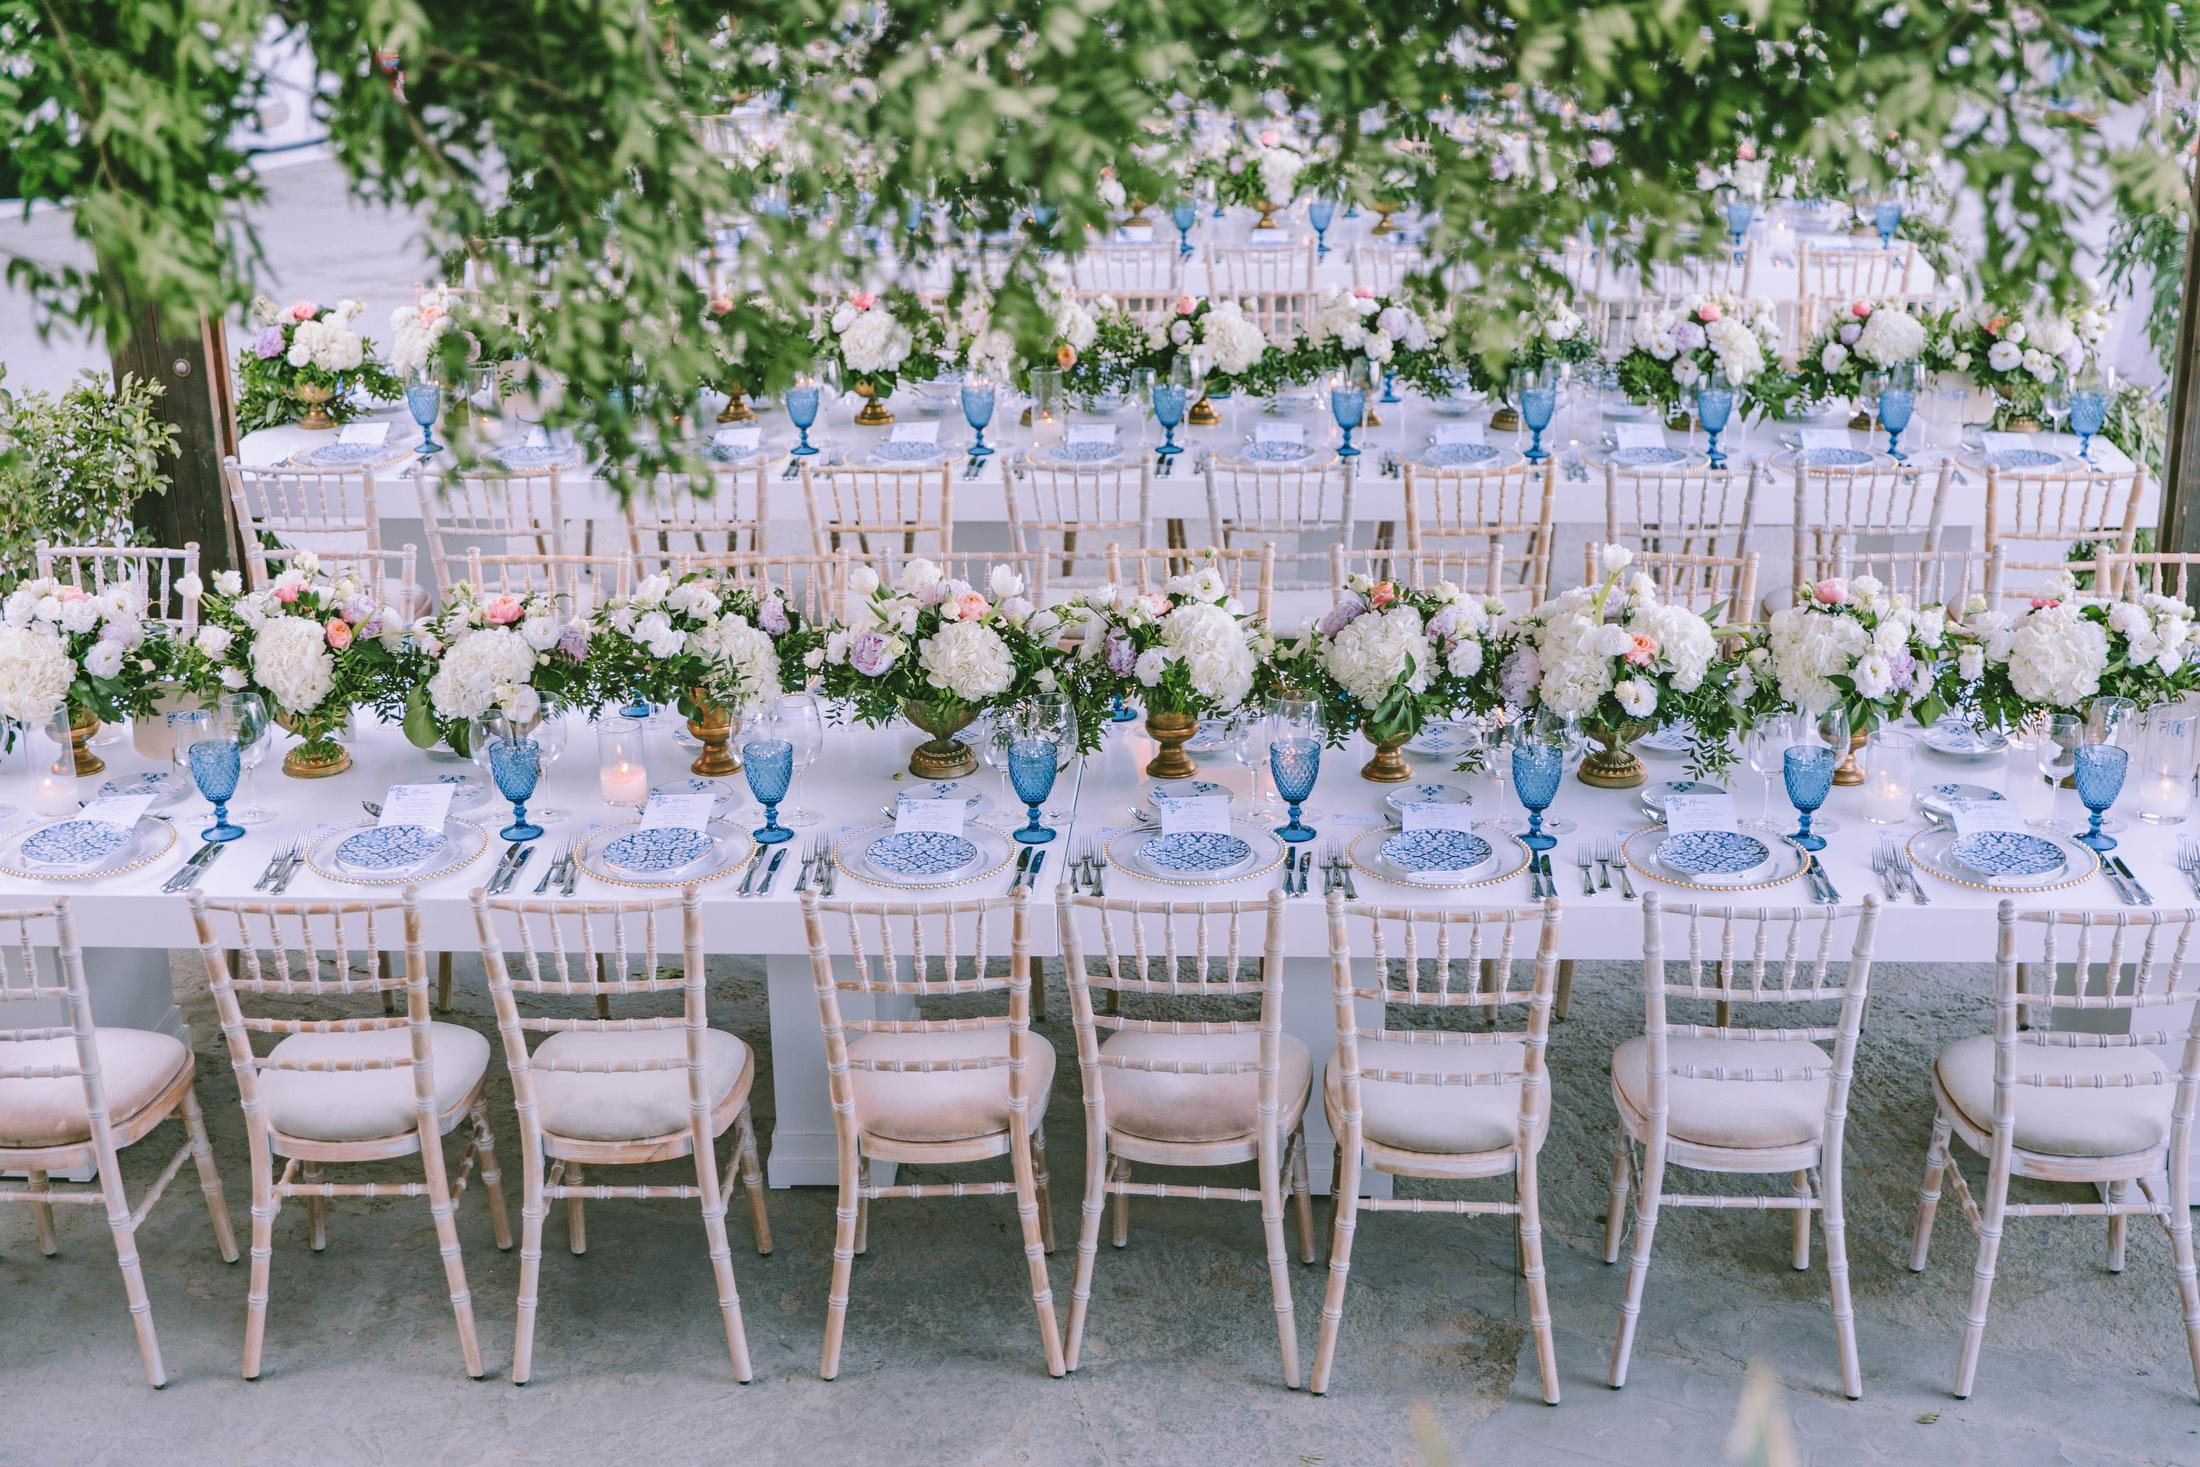 Spectacular Sifnos Island wedding in Greece created by wedding planning agency Riviera Blu Events